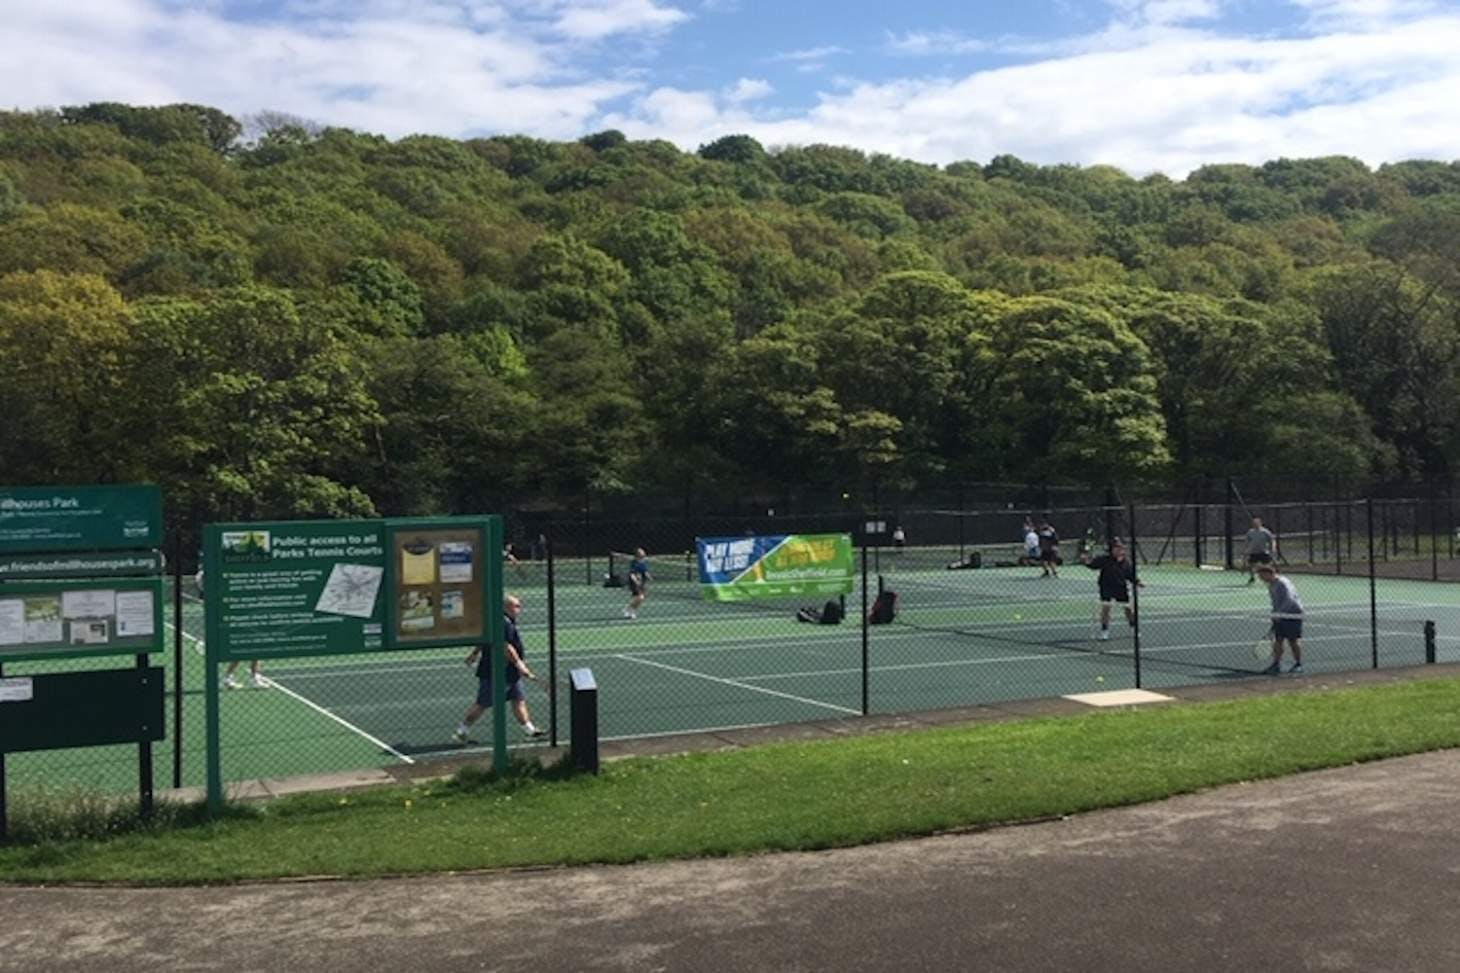 Millhouses Park Outdoor | Hard (macadam) tennis court